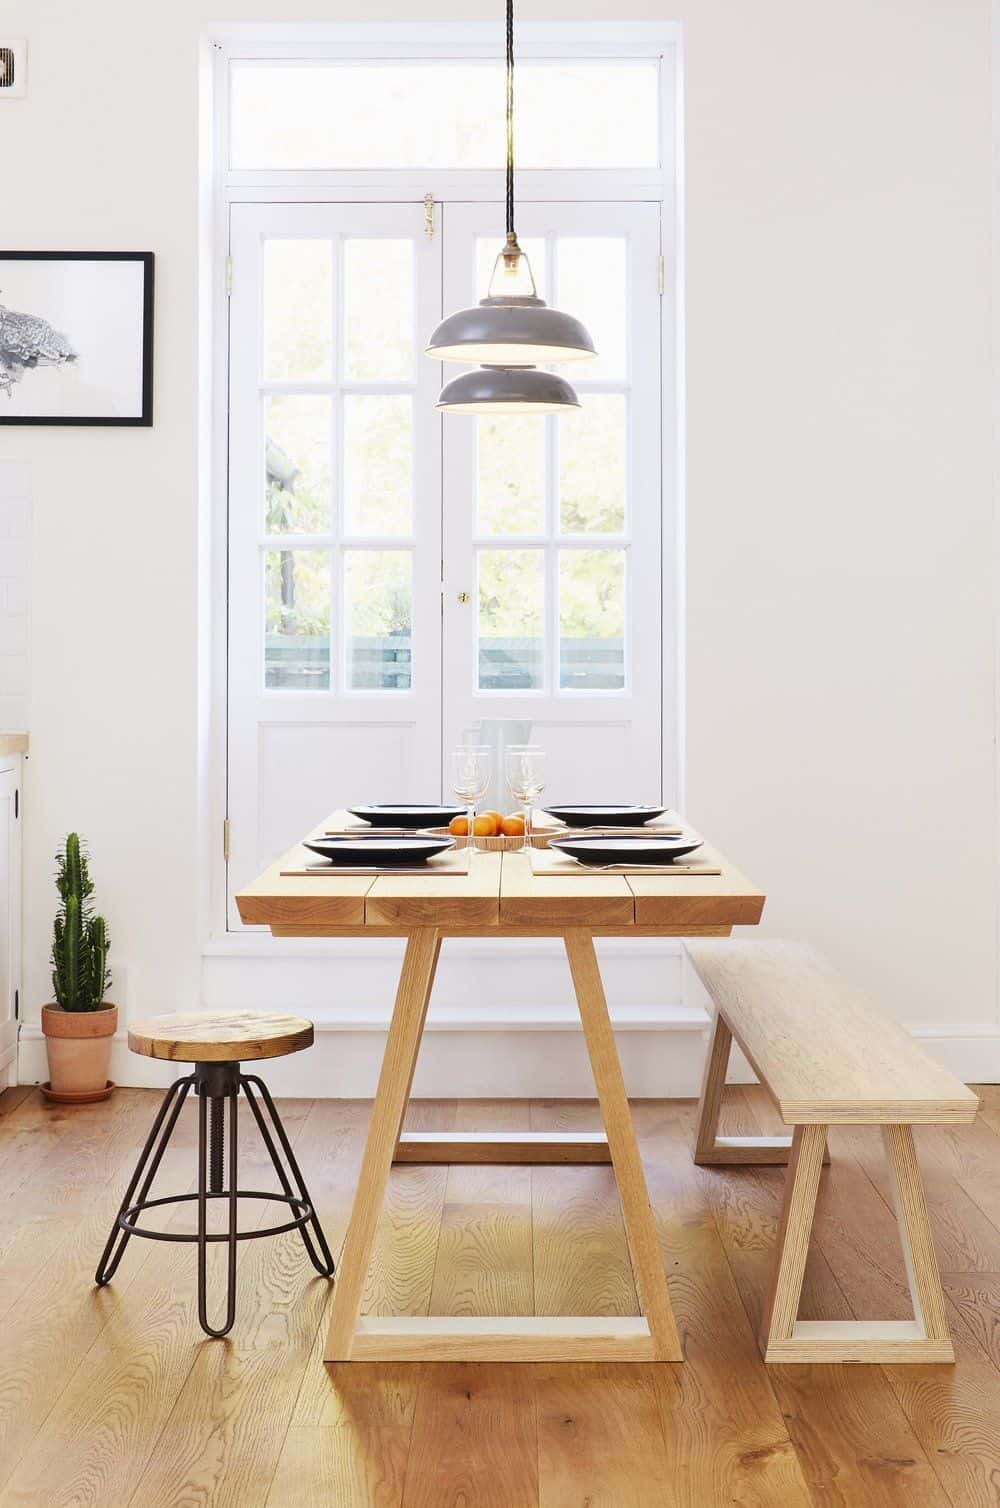 bespoke plywood table for dining in front of a white glass door